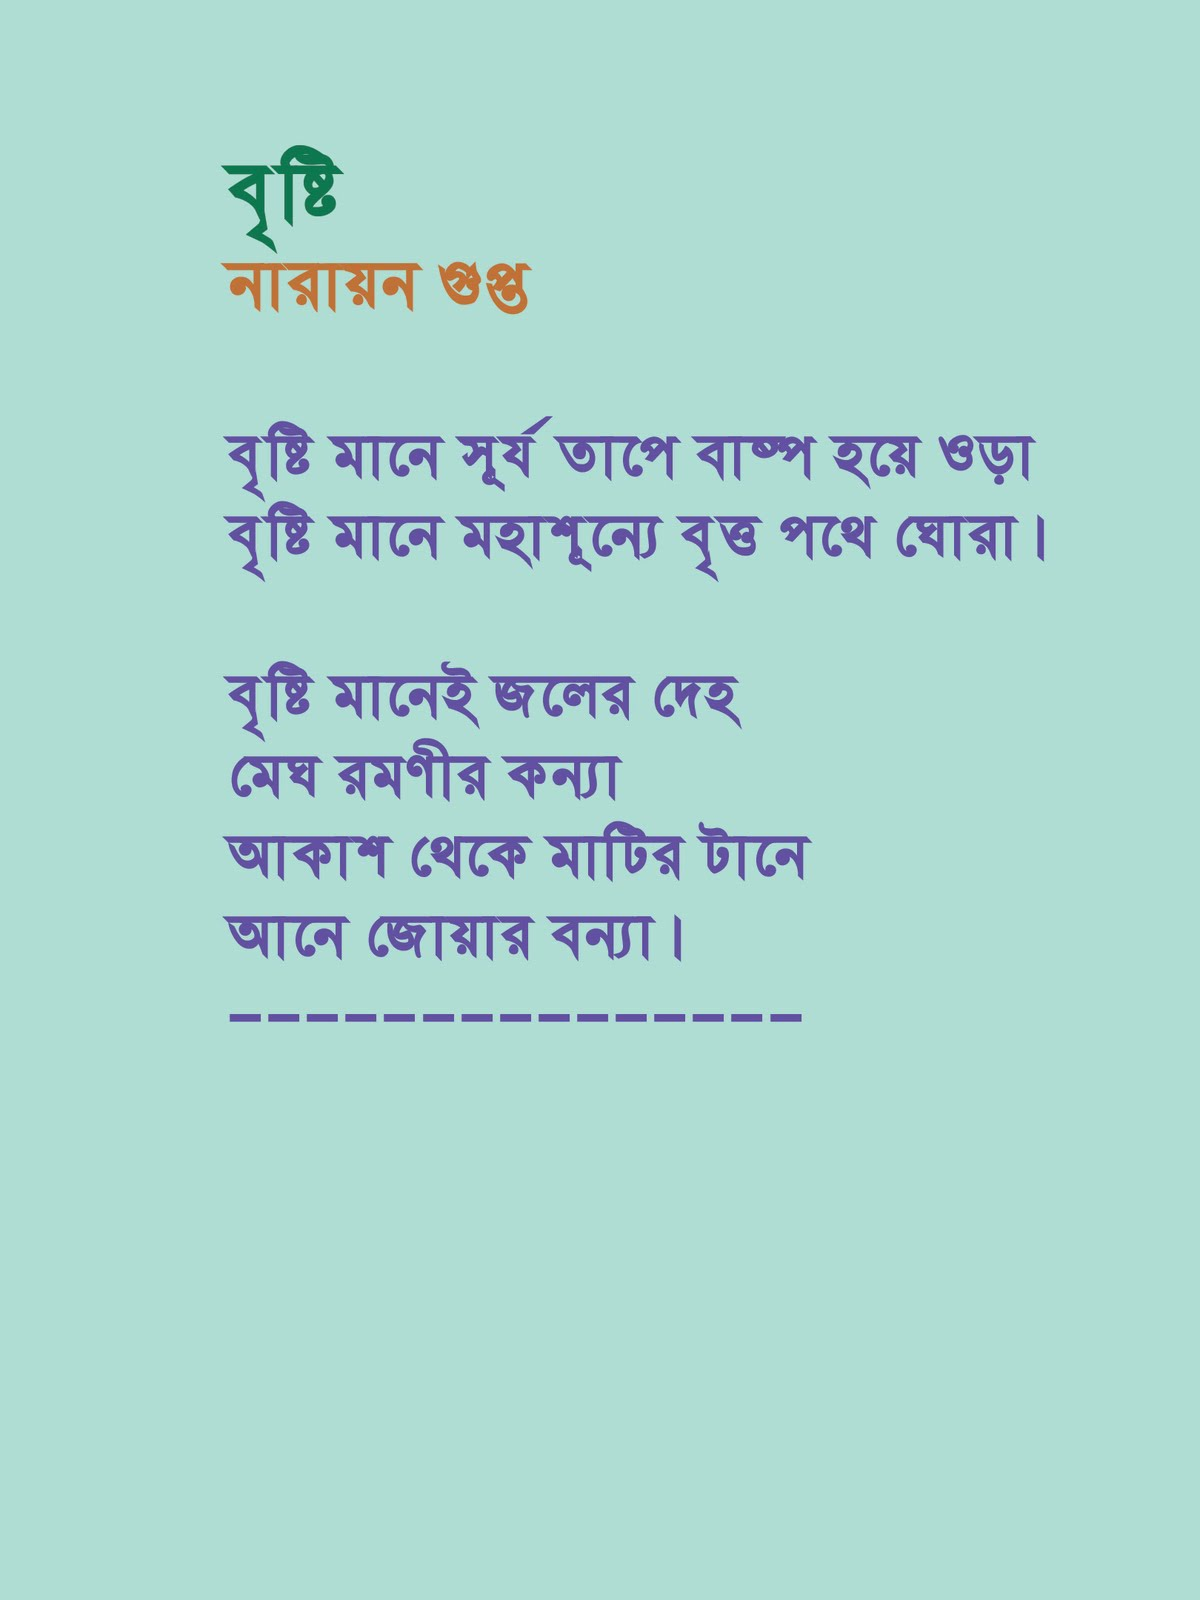 Bangla Romantic Poem http://classic-bangla-poem.blogspot.com/2010/05 ...